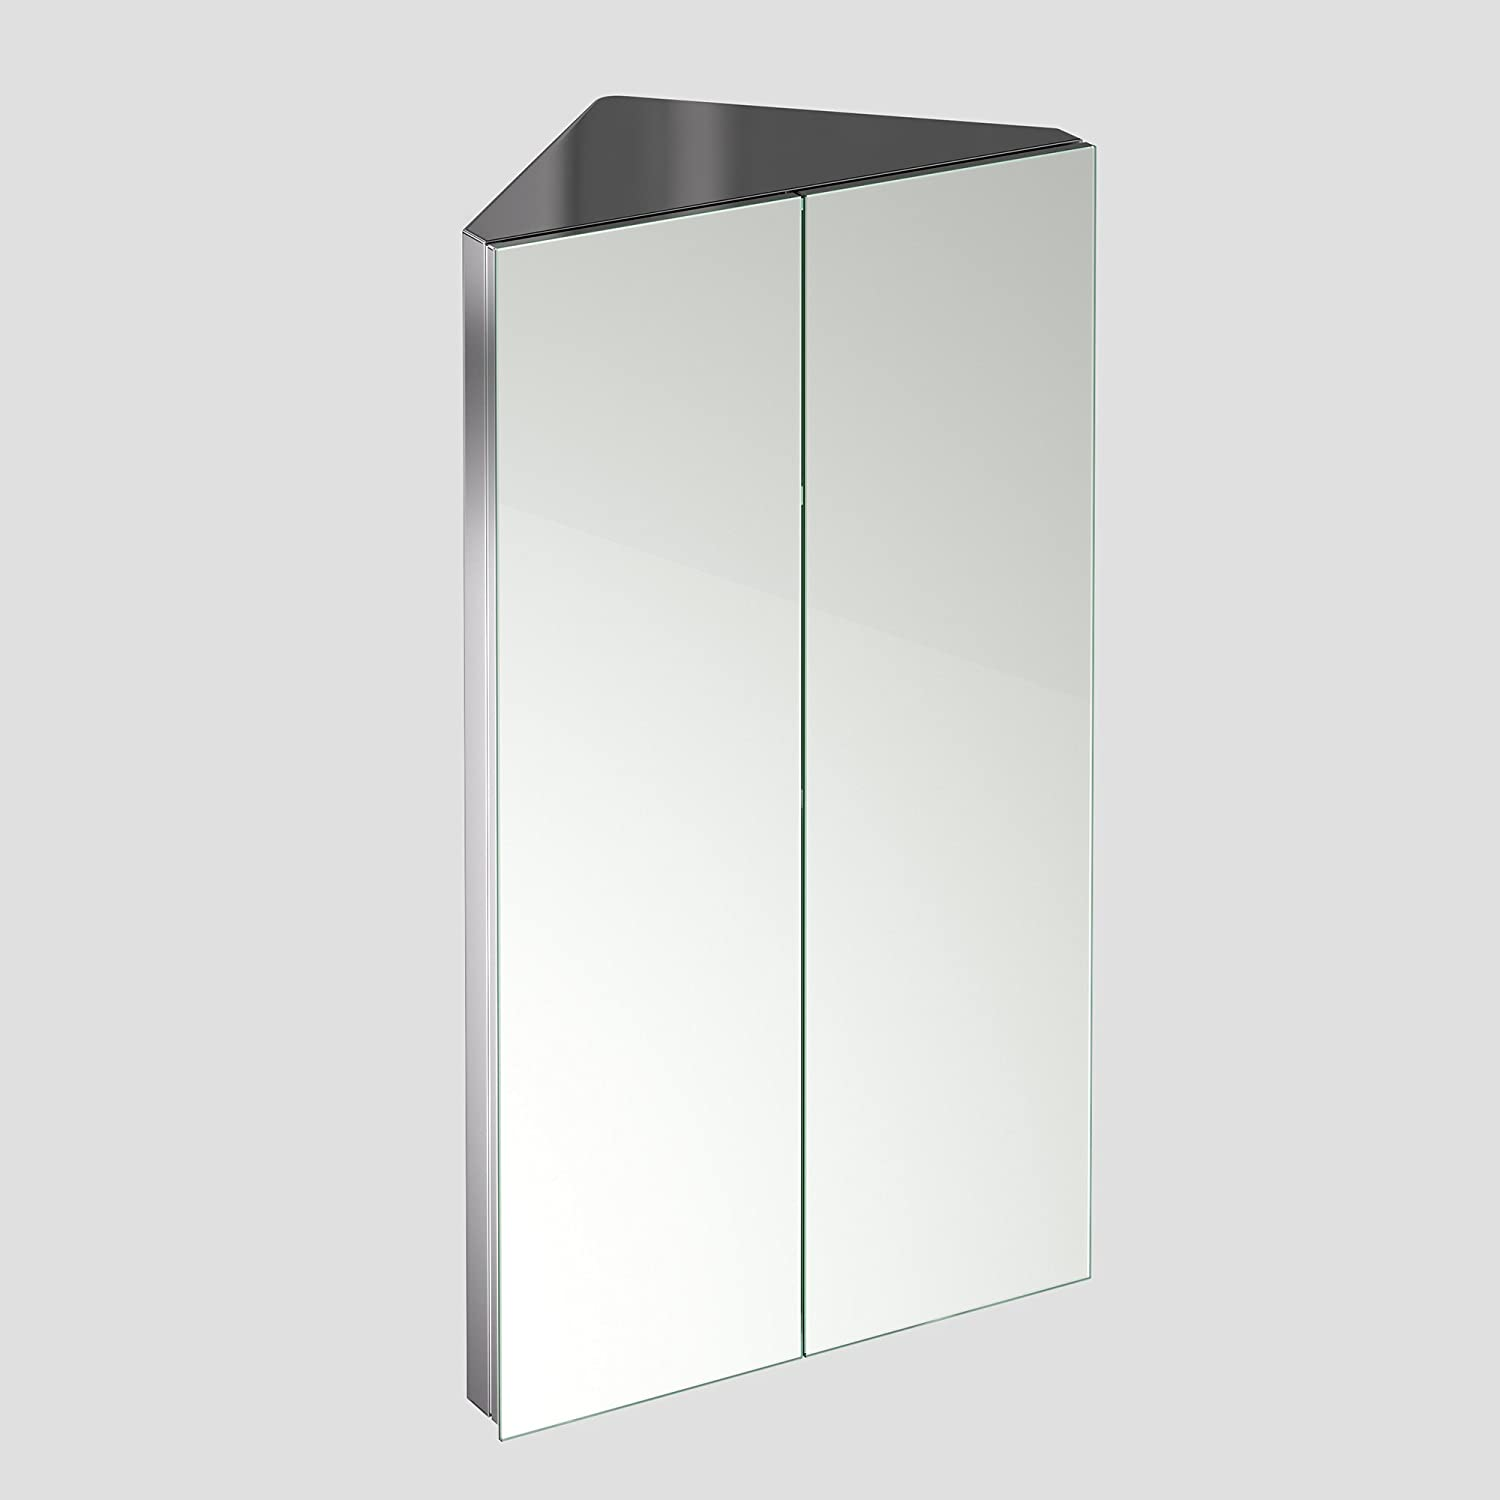 780 X 450 Stainless Steel Corner Bathroom Mirror Cabinet Modern 2 Door  Storage Unit MC127: IBathUK: Amazon.co.uk: Kitchen U0026 Home